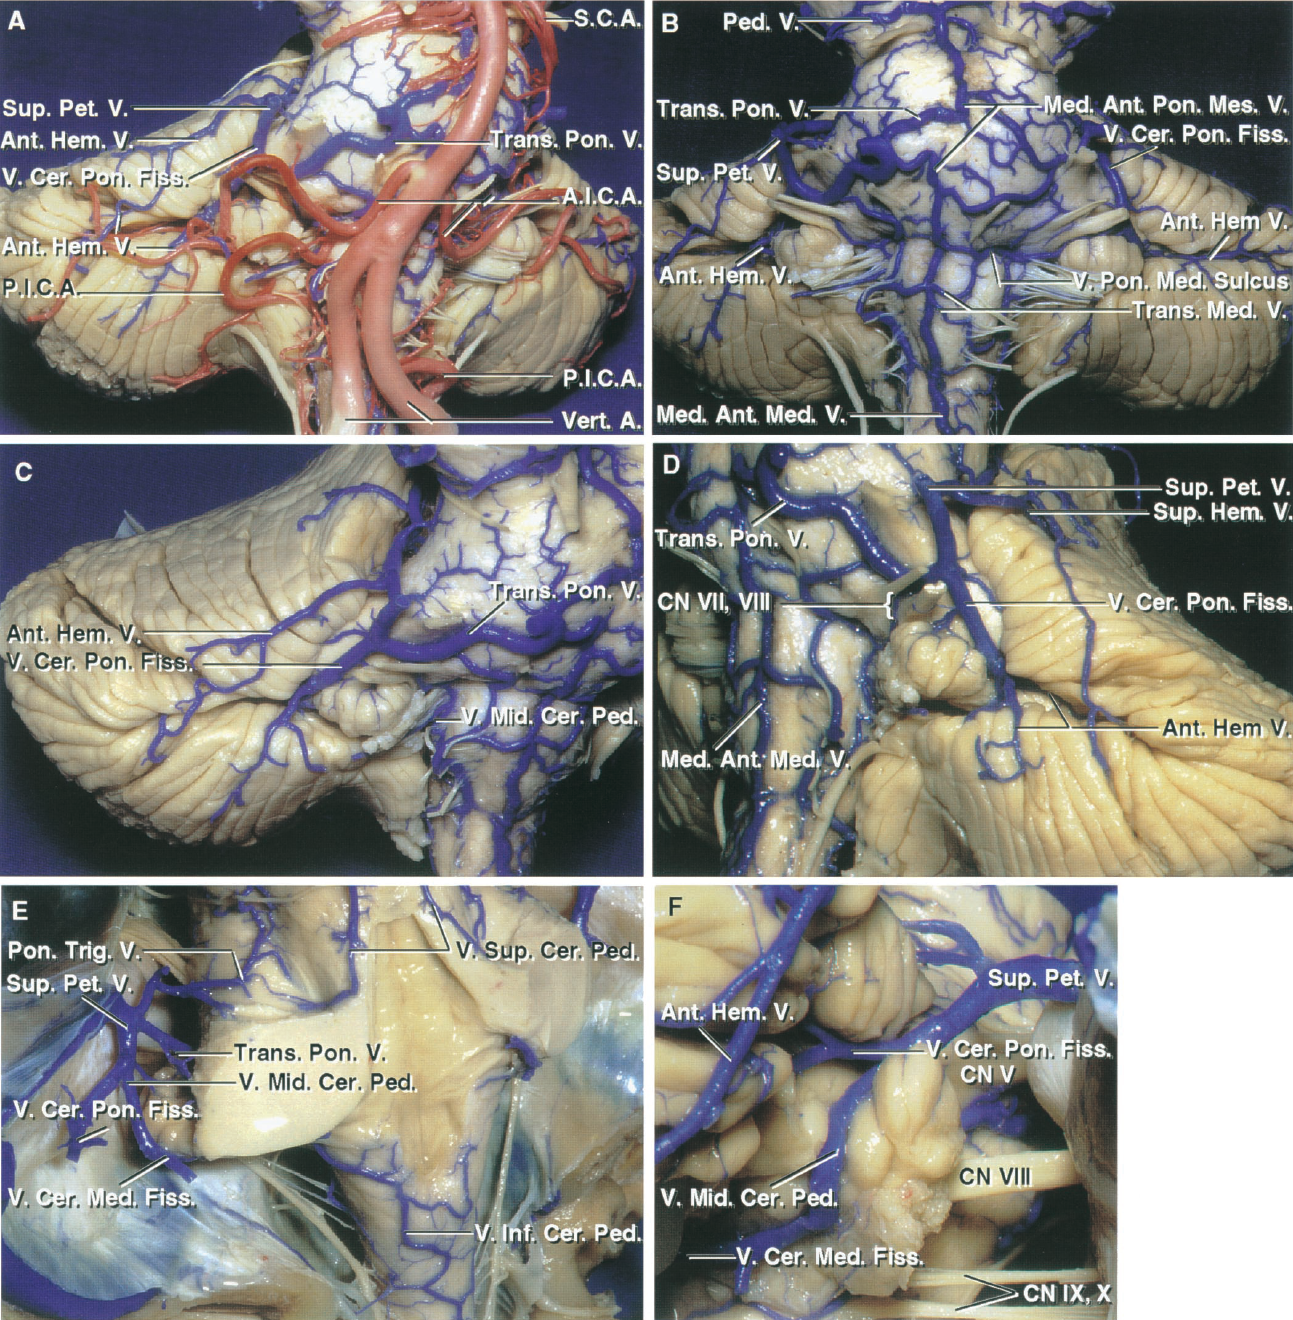 FIGURE 3.9. Brainstem and petrosal surface. A, the vertebral and basilar arteries and their branches course superficial to the veins. The veins on the anterior surface of the pons and medulla and the petrosal surface drain predominantly into the superior petrosal veins, which empty into the superior petrosal sinuses. B, the arteries have been removed. The median anterior pontomesencephalic and median anterior medullary veins ascend on the front of the brainstem. The transverse pontine and transverse medullary veins run transversely across the pons and medulla surfaces. The anterior hemispheric veins drain the petrosal surface and commonly empty into the vein of the cerebellopontine fissure, which ascends to join the superior petrosal veins. The vein of the pontomedullary sulcus passes across the pontomedullary junction. C, enlarged view of the right petrosal surface. The anterior hemispheric veins drain the petrosal surface and pass forward to empty into the vein of the cerebellopontine fissure or a superior petrosal vein. The vein of the cerebellopontine fissure arises at the lateral apex of the cerebellopontine fissure and crosses the middle cerebellar peduncle, where it is joined by a large transverse pontine vein. D, enlarged view of the left petrosal surface. The vein of the cerebellopontine fissure arises from the union of the anterior hemispheric veins at the apex of the cerebellopontine fissure and ascends to be joined by a superior hemispheric vein from the lateral part of the tentorial surface before emptying into the superior petrosal sinus. E, the cerebellum has been removed to expose the veins of the superior, inferior, and middle cerebellar peduncles. The vein of the superior cerebellar peduncle ascends to join the vein of the cerebellomesencephalic fissure. The vein of the inferior cerebellar peduncle crosses the peduncle at the inferolateral margin of the fourth ventricle and passes around the lateral recess to join the veins in the cerebellopontine angle. The veins of the cerebellopontine fissure and middle cerebellar peduncle and a transverse pontine vein join to form a superior petrosal vein. The vein of the cerebellomedullary fissure empties into the vein of the middle cerebellar peduncle. F, posterior view of the right cerebellopontine angle. The vein of the cerebellomedullary fissure passes laterally across the lateral recess and empties into the vein of the middle cerebellar peduncle. The latter vein and the vein of the cerebellopontine fissure join to form a large superior petrosal vein. A large anterior hemispheric vein ascends along the petrosal surface. A., artery; A.I.C.A., anteroinferior cerebellar artery; Ant., anterior; Cer., cerebellar, cerebral; Cer. Med., cerebellomedullary; Cer. Pon., cerebellopontine; CN, cranial nerve; Fiss., fissure; Hem., hemispheric; Inf., inferior; Med., median, medullary; Mid., middle; Ped., peduncle; Pet., petrosal; P.I.C.A., posteroinferior cerebellar artery; Pon., pontine; Pon. Med., pontomedullary; Pon. Mes., pontomesencephalic; Pon. Trig., pontotrigeminal; S.C.A., superior cerebellar artery; Sup., superior; Trans., transverse; Trig., trigeminal; V., vein; Vert., vertebral.